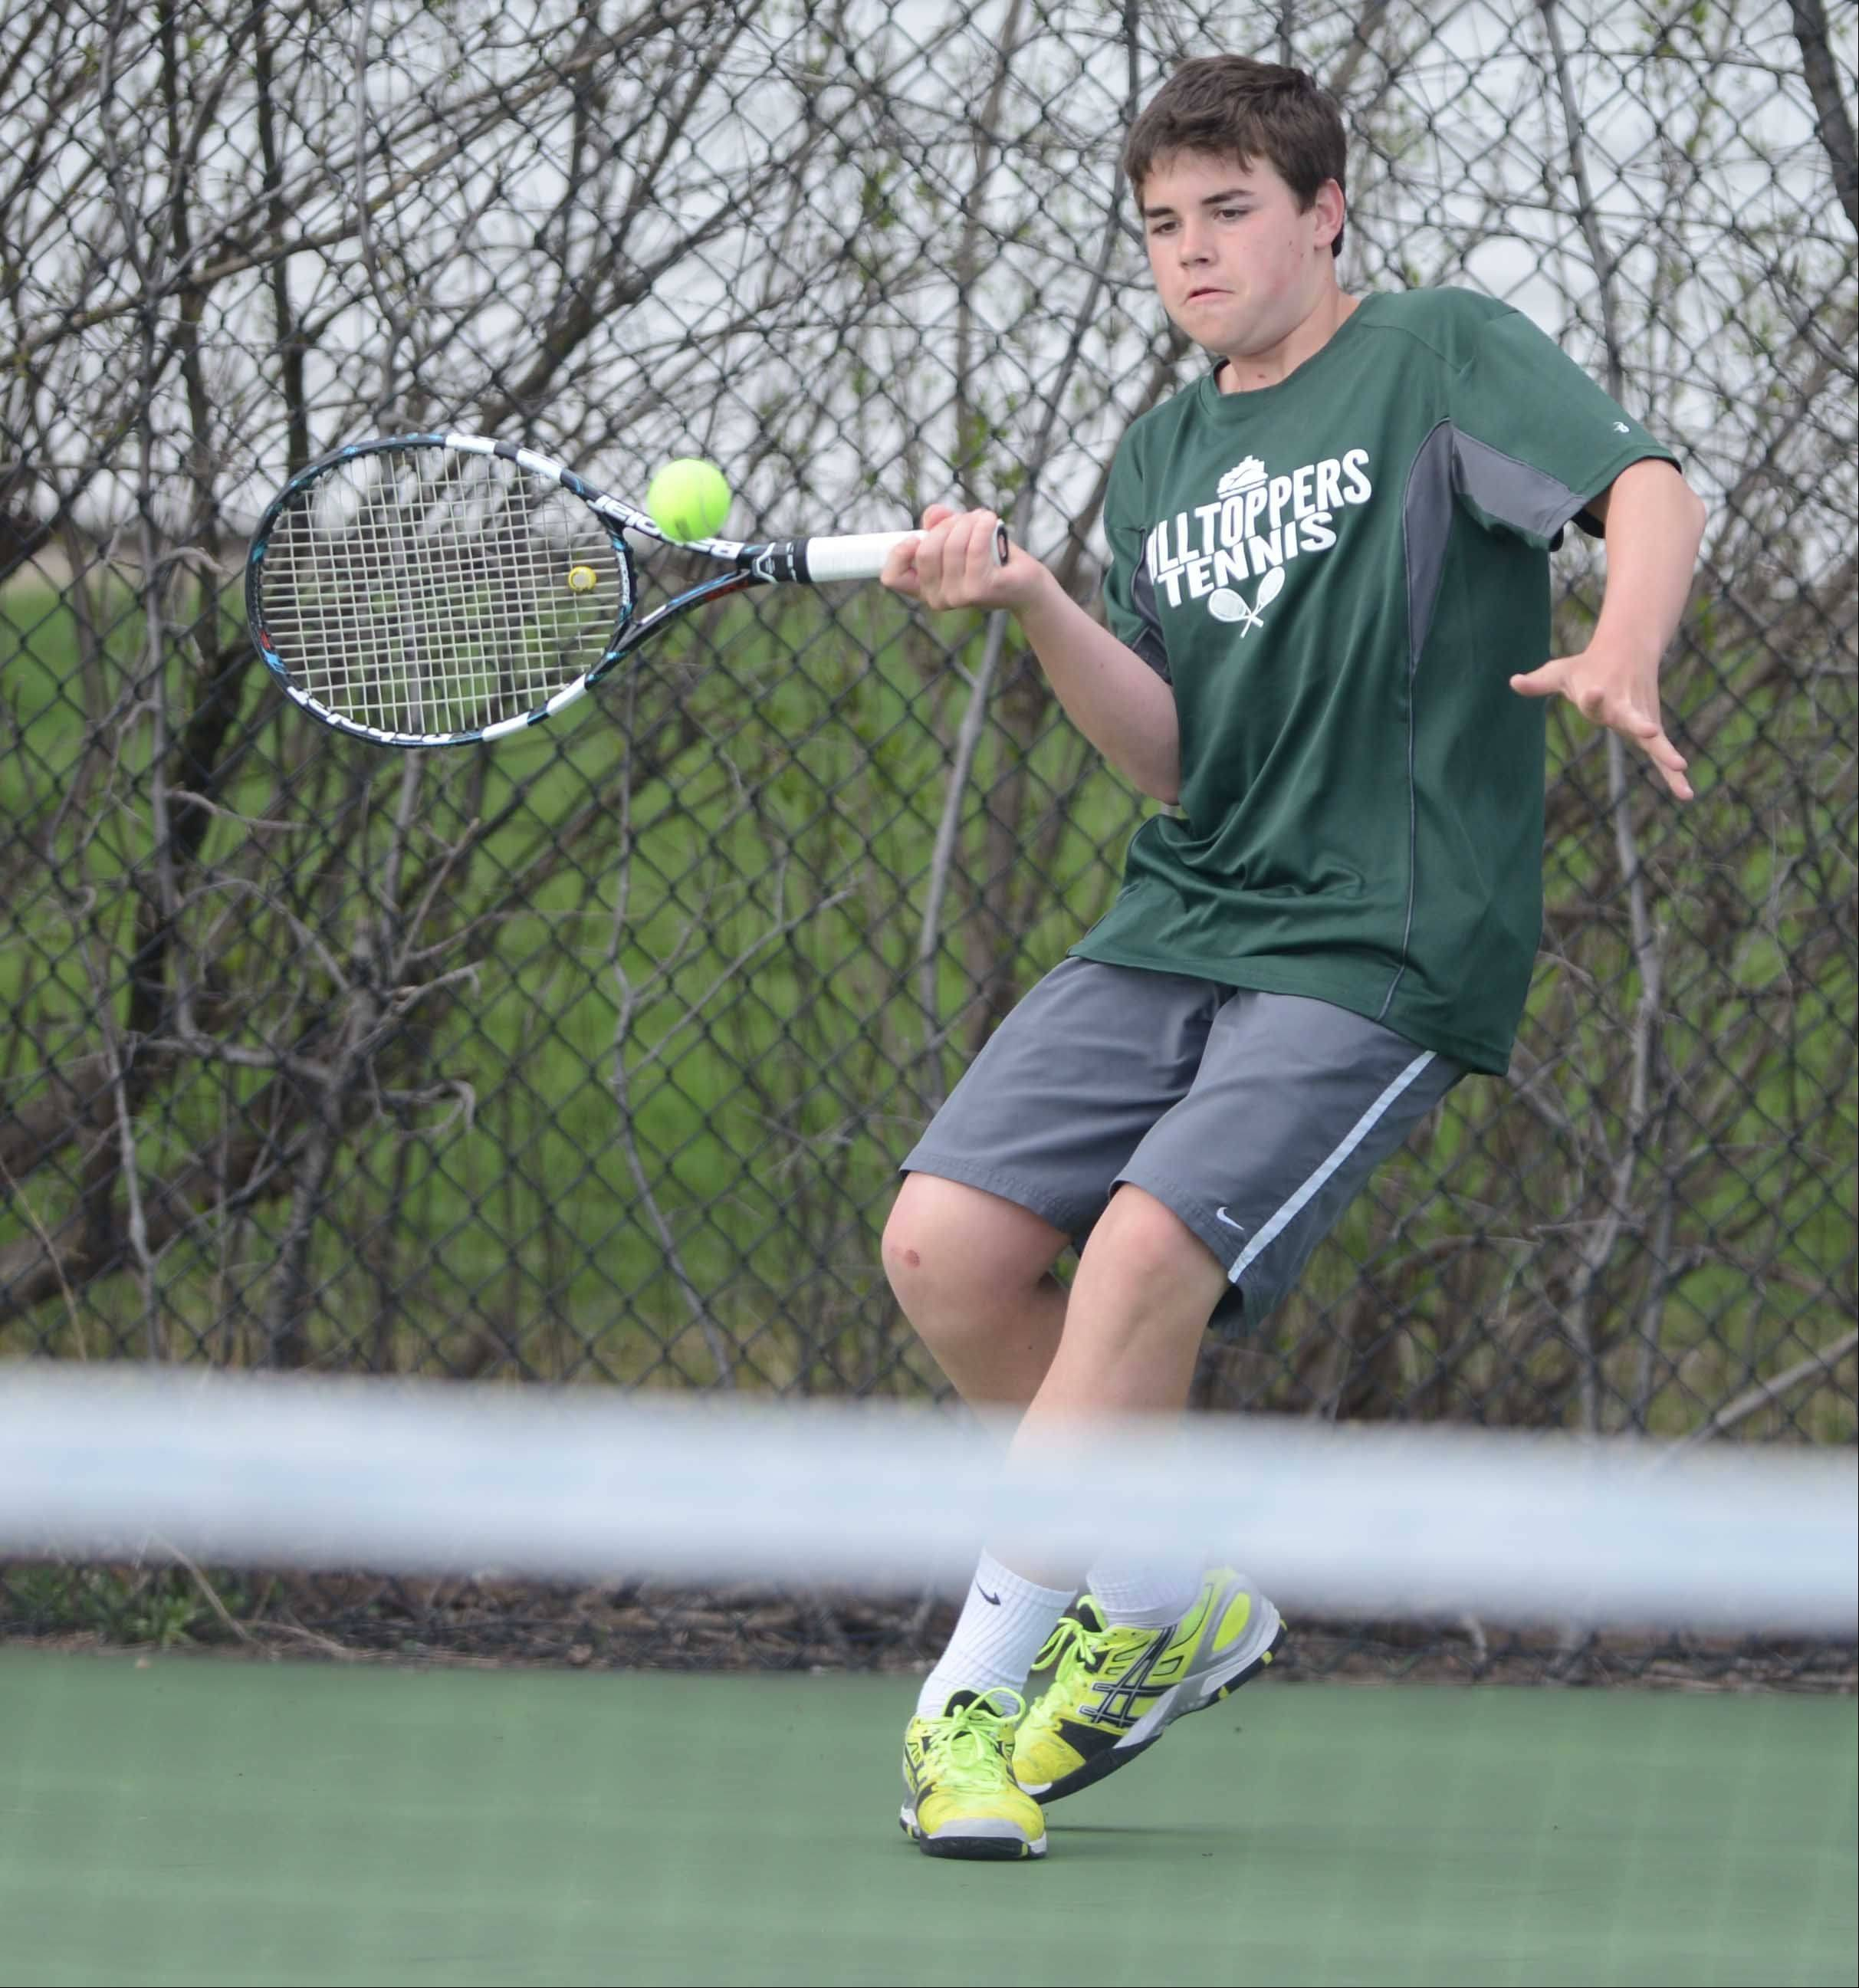 Nate Dell of Glenbard West in the #1 singles match during the Glenbard West at Wheaton North boys tennis meet Wednesday.